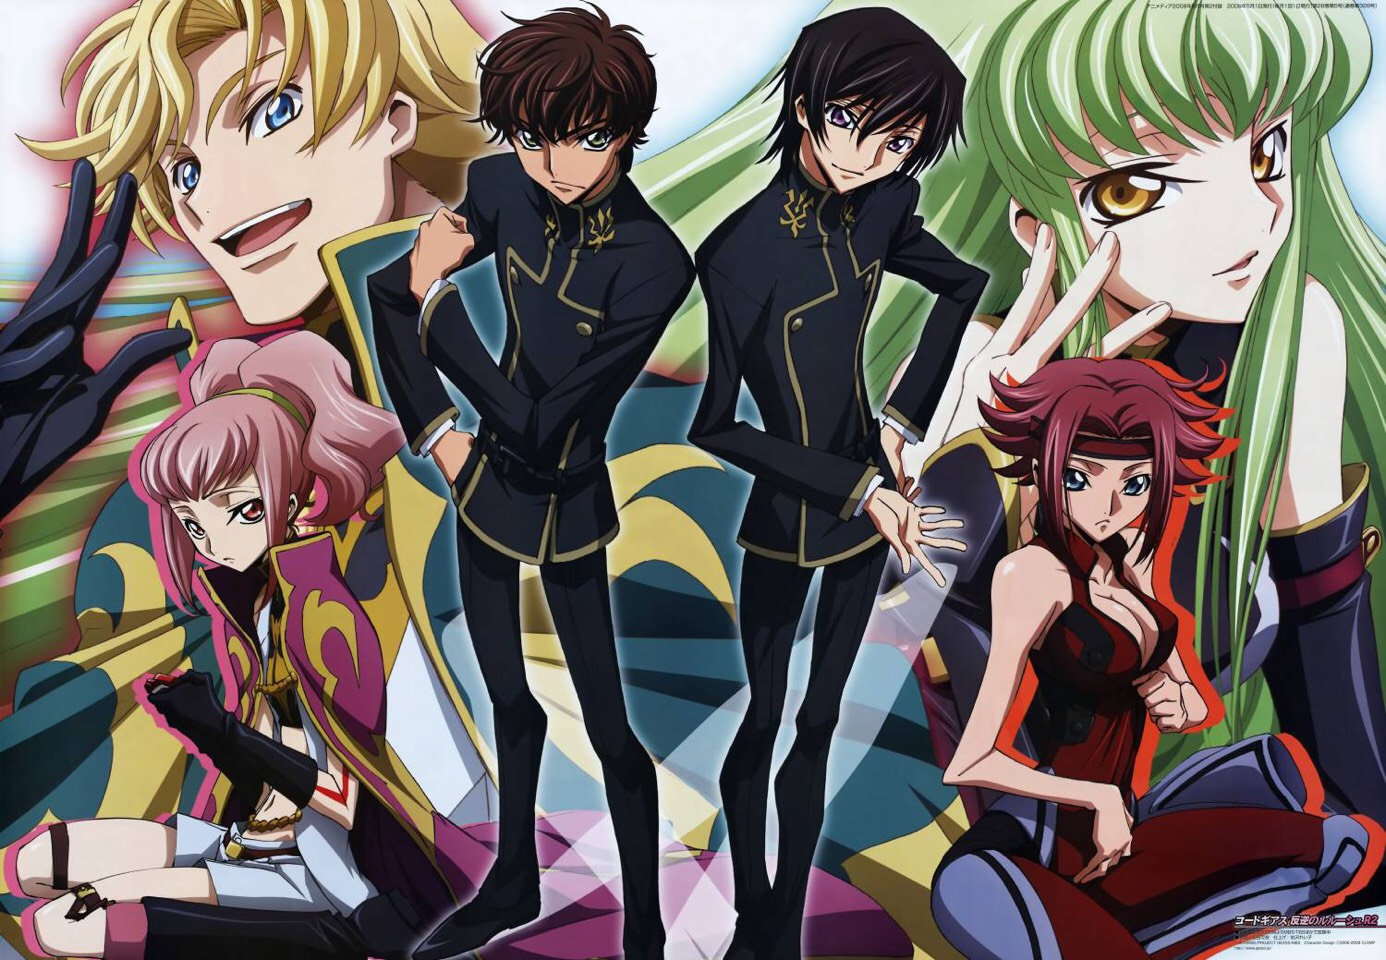 Code Geass  Amazing show. It's a thriller and revolves around a strategic mastermind high schooler  trying to take down one of the world's  greatest empires. Even those who don't usually watch anime should check this out. The plot is captivating